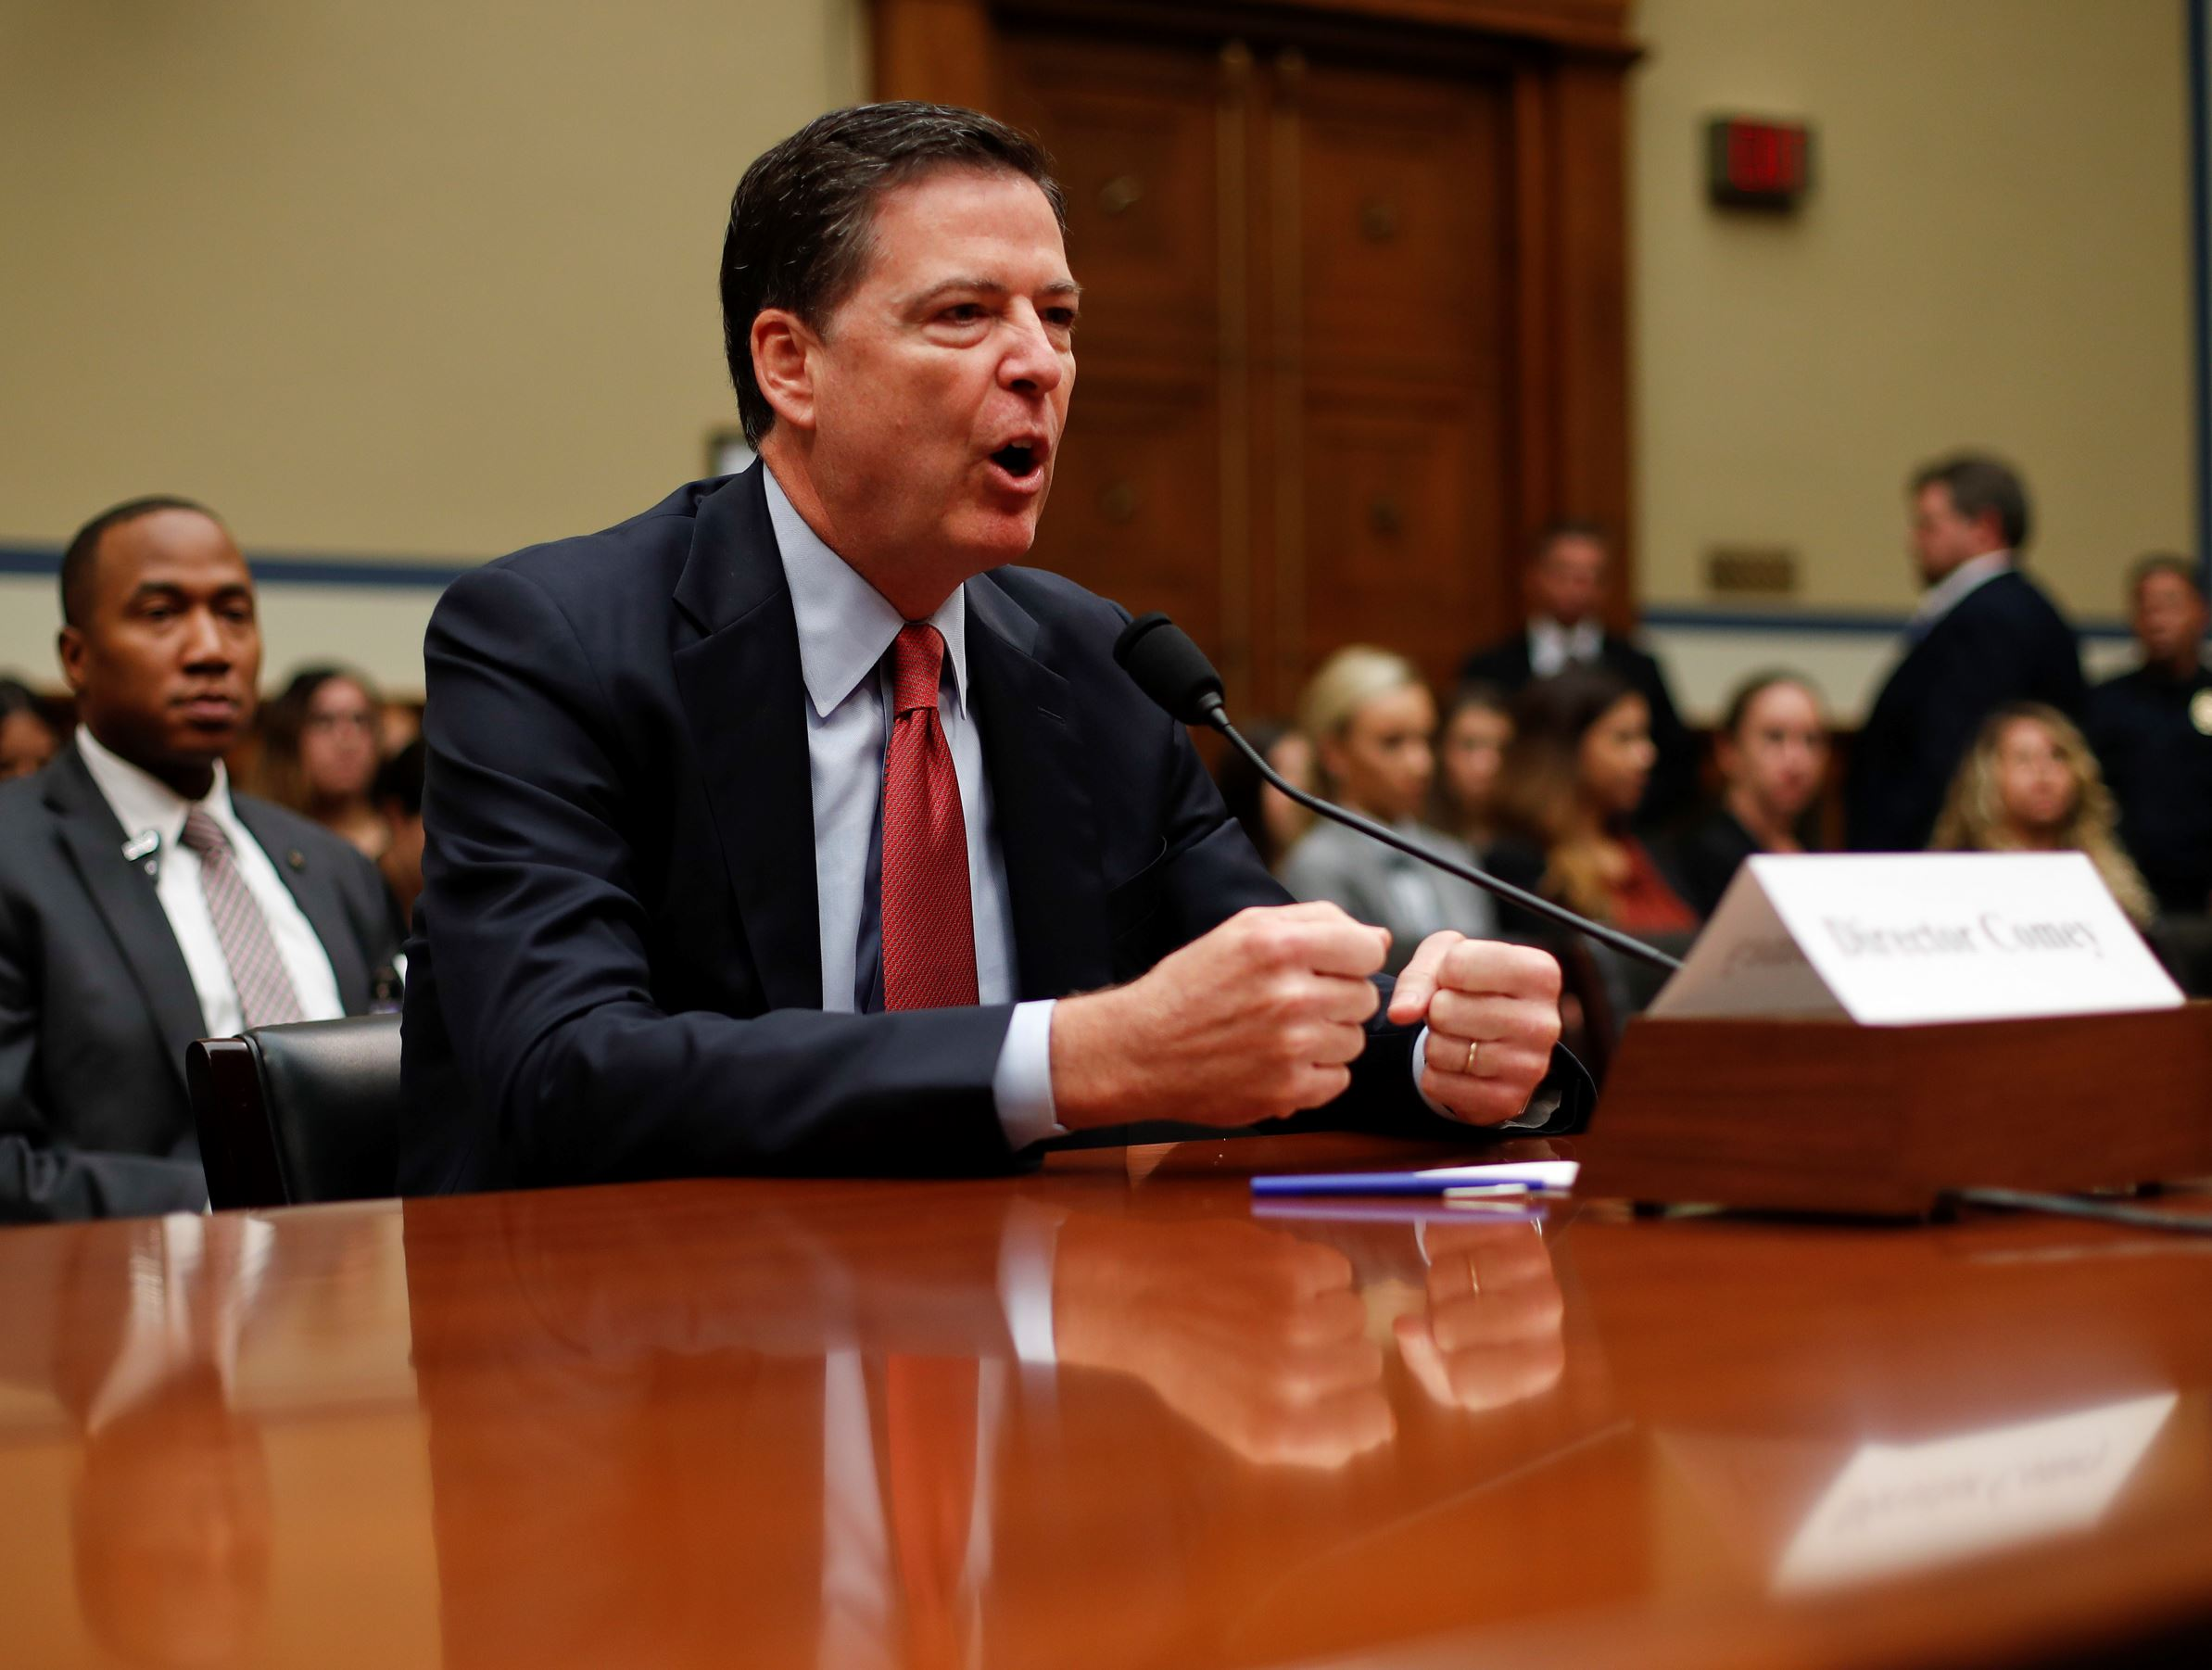 FILE - In this Sept. 28, 2016, file photo, FBI Director James Comey testifies on Capitol Hill in Washington.